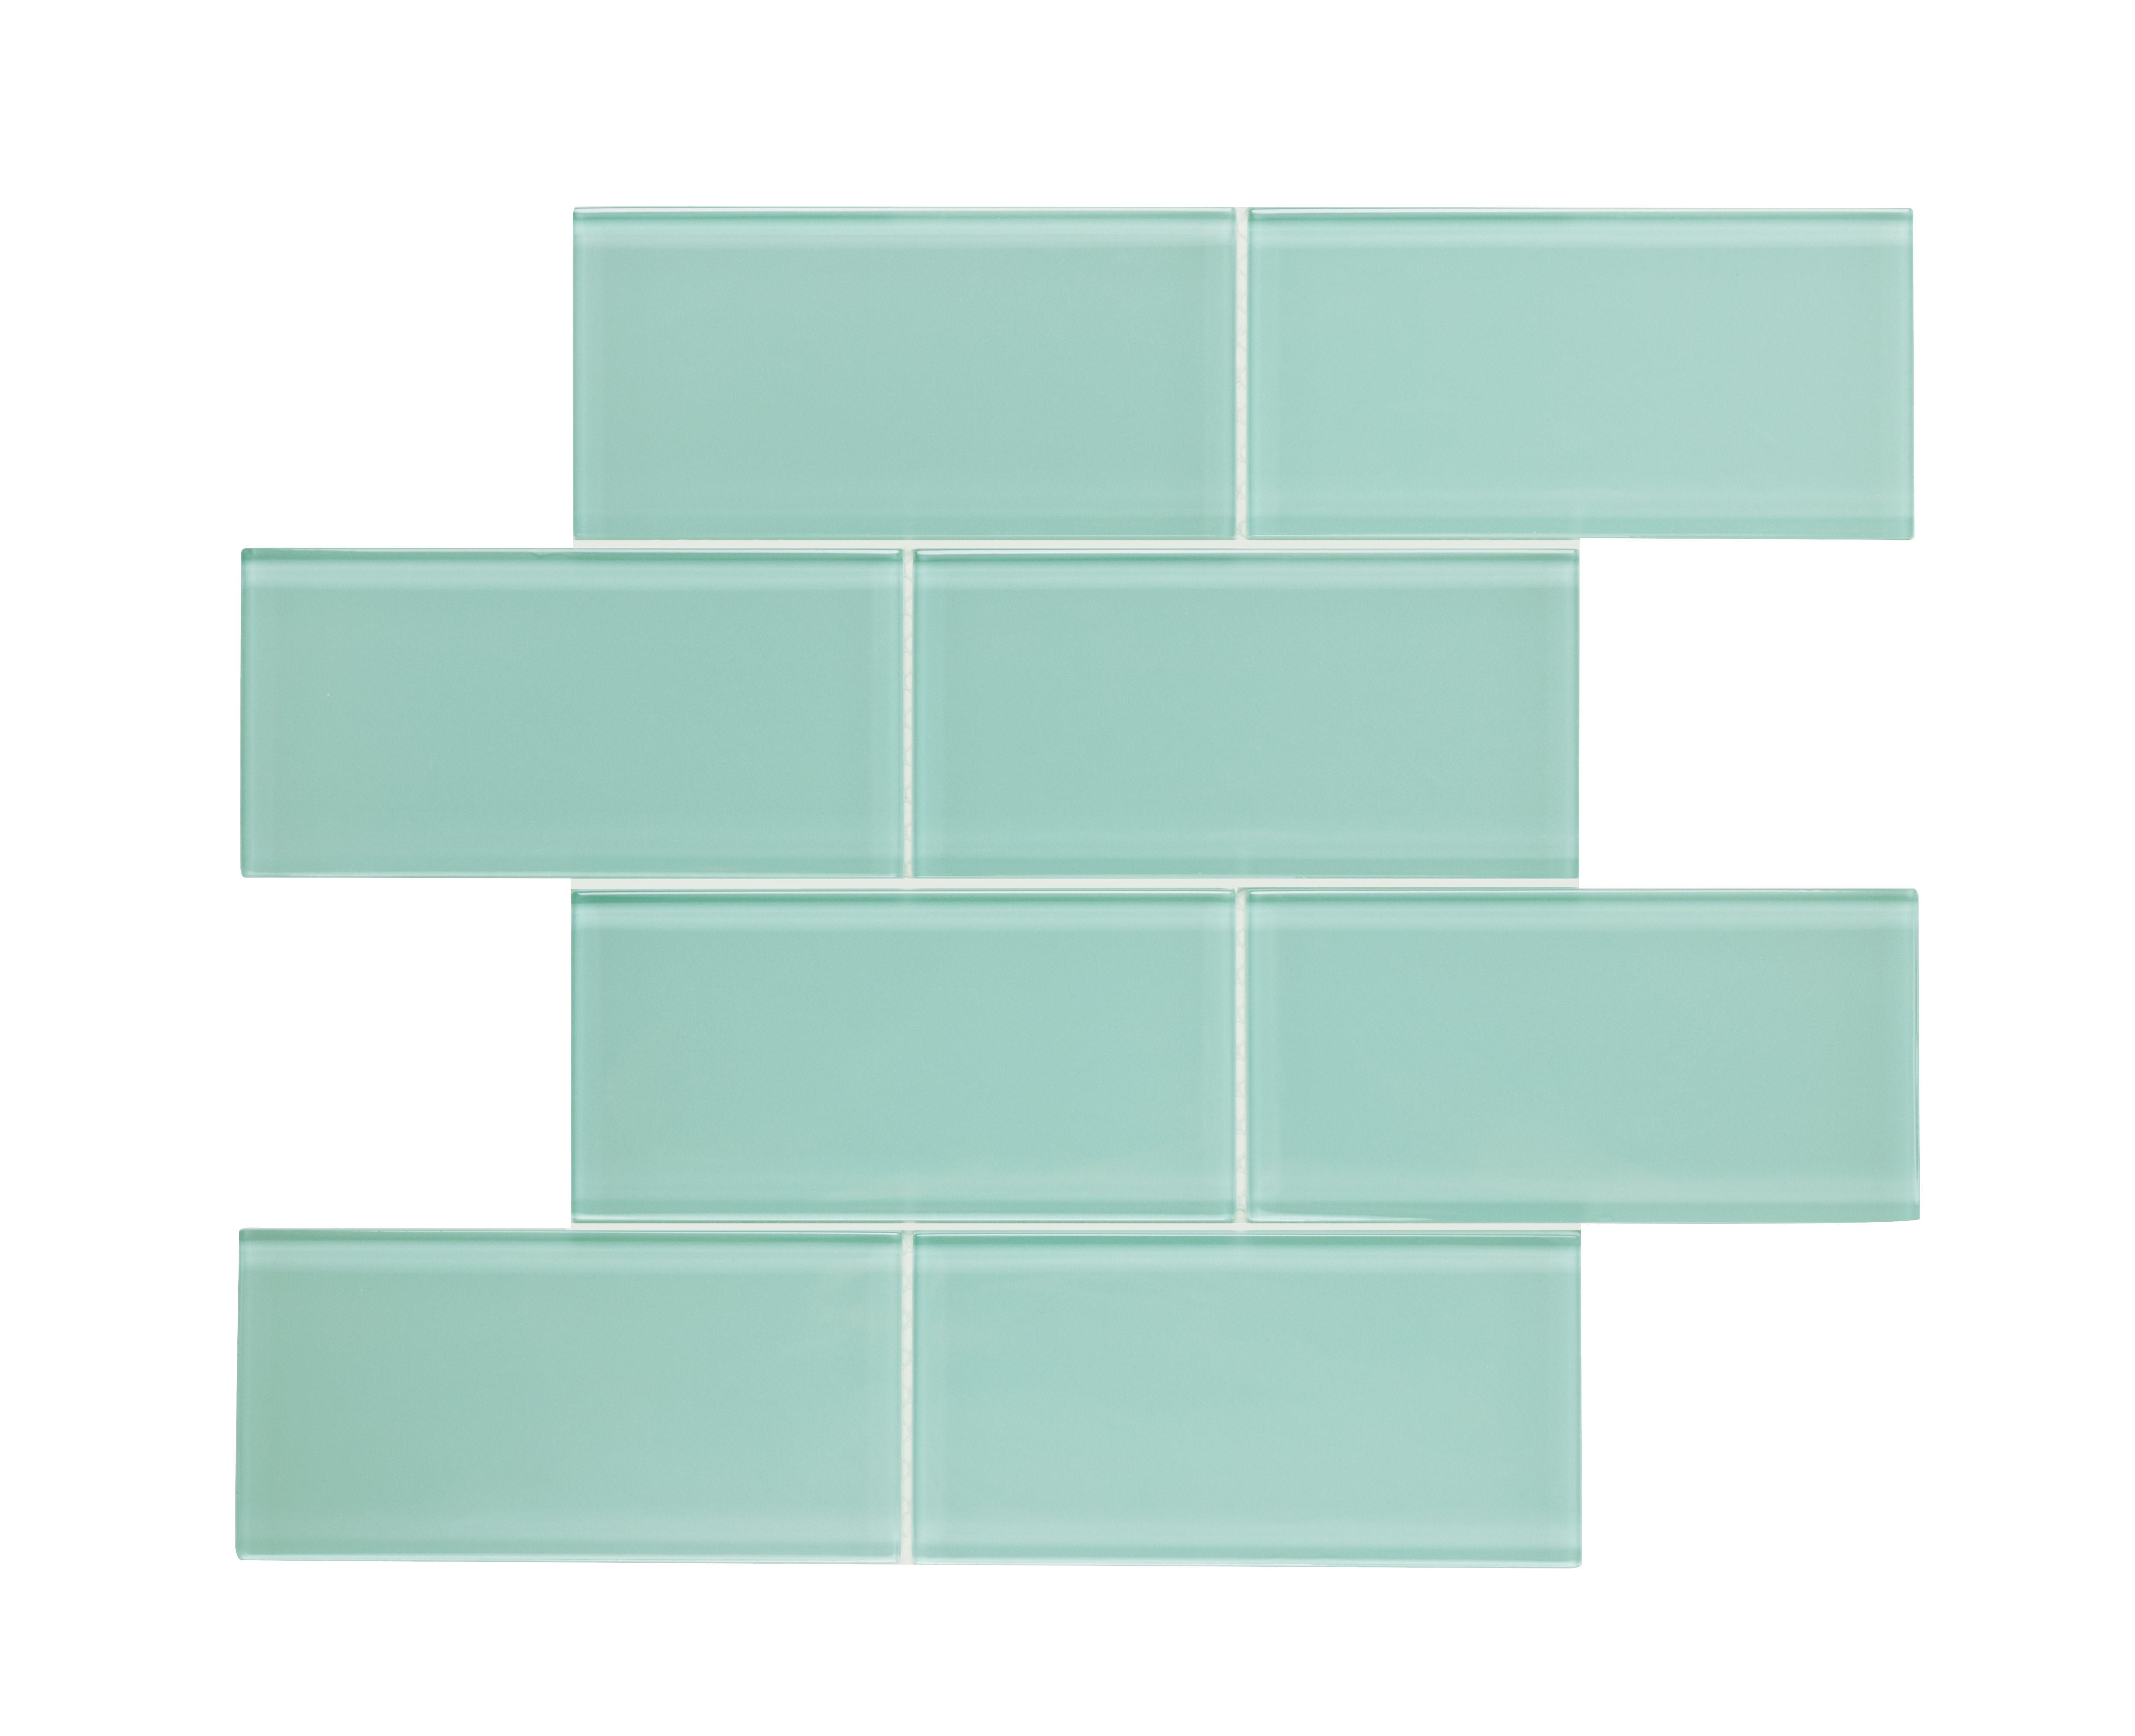 """Glass Mosaic / 16 x 12 x 0.16 inches / Glossy Large 3"""" X 6"""" X 4mm Glass Subway Mosaic Tile In Light Teal 0"""